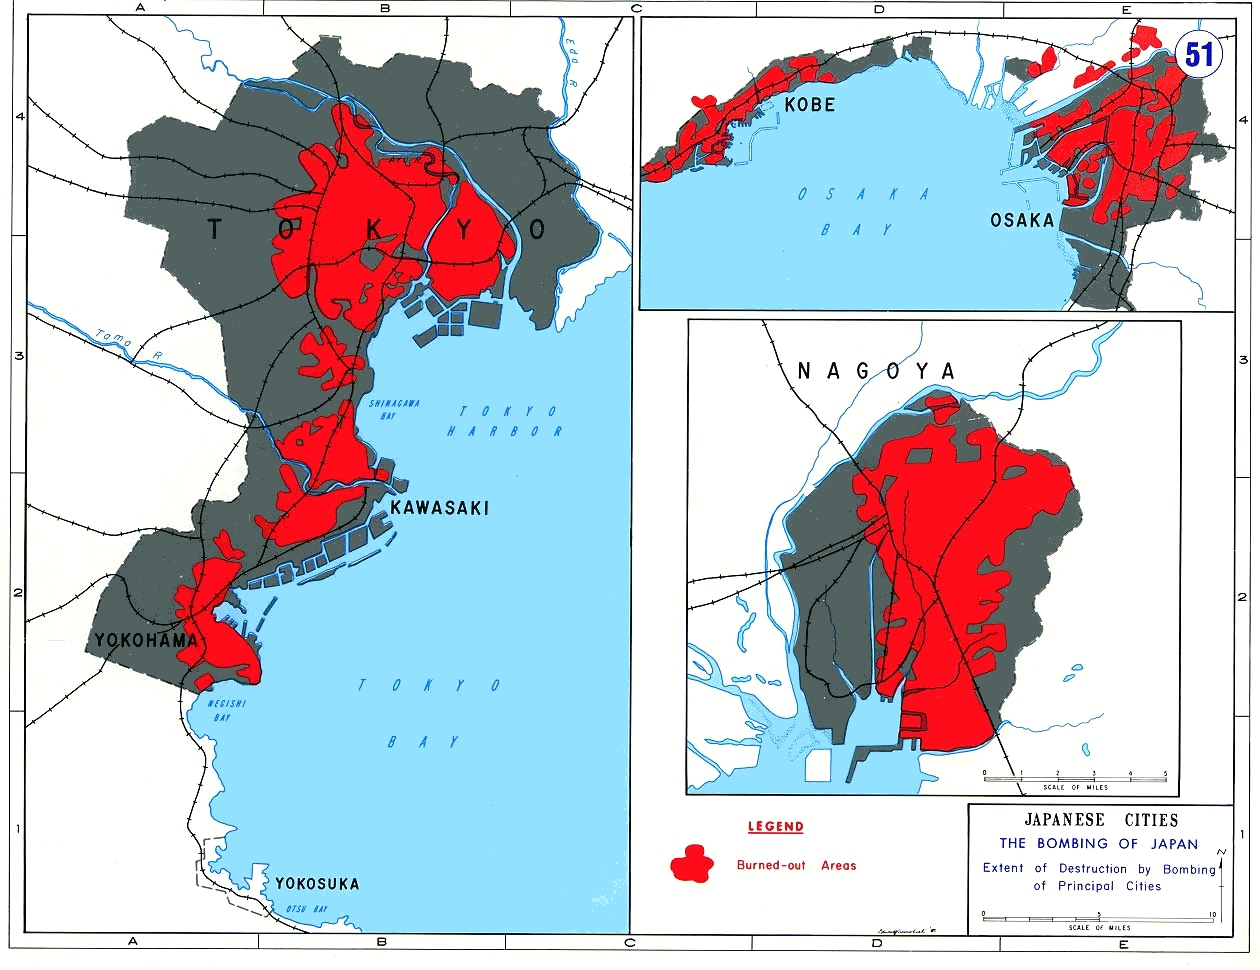 Areas_of_principal_Japanese_cities_destoyed_by_US_bombing